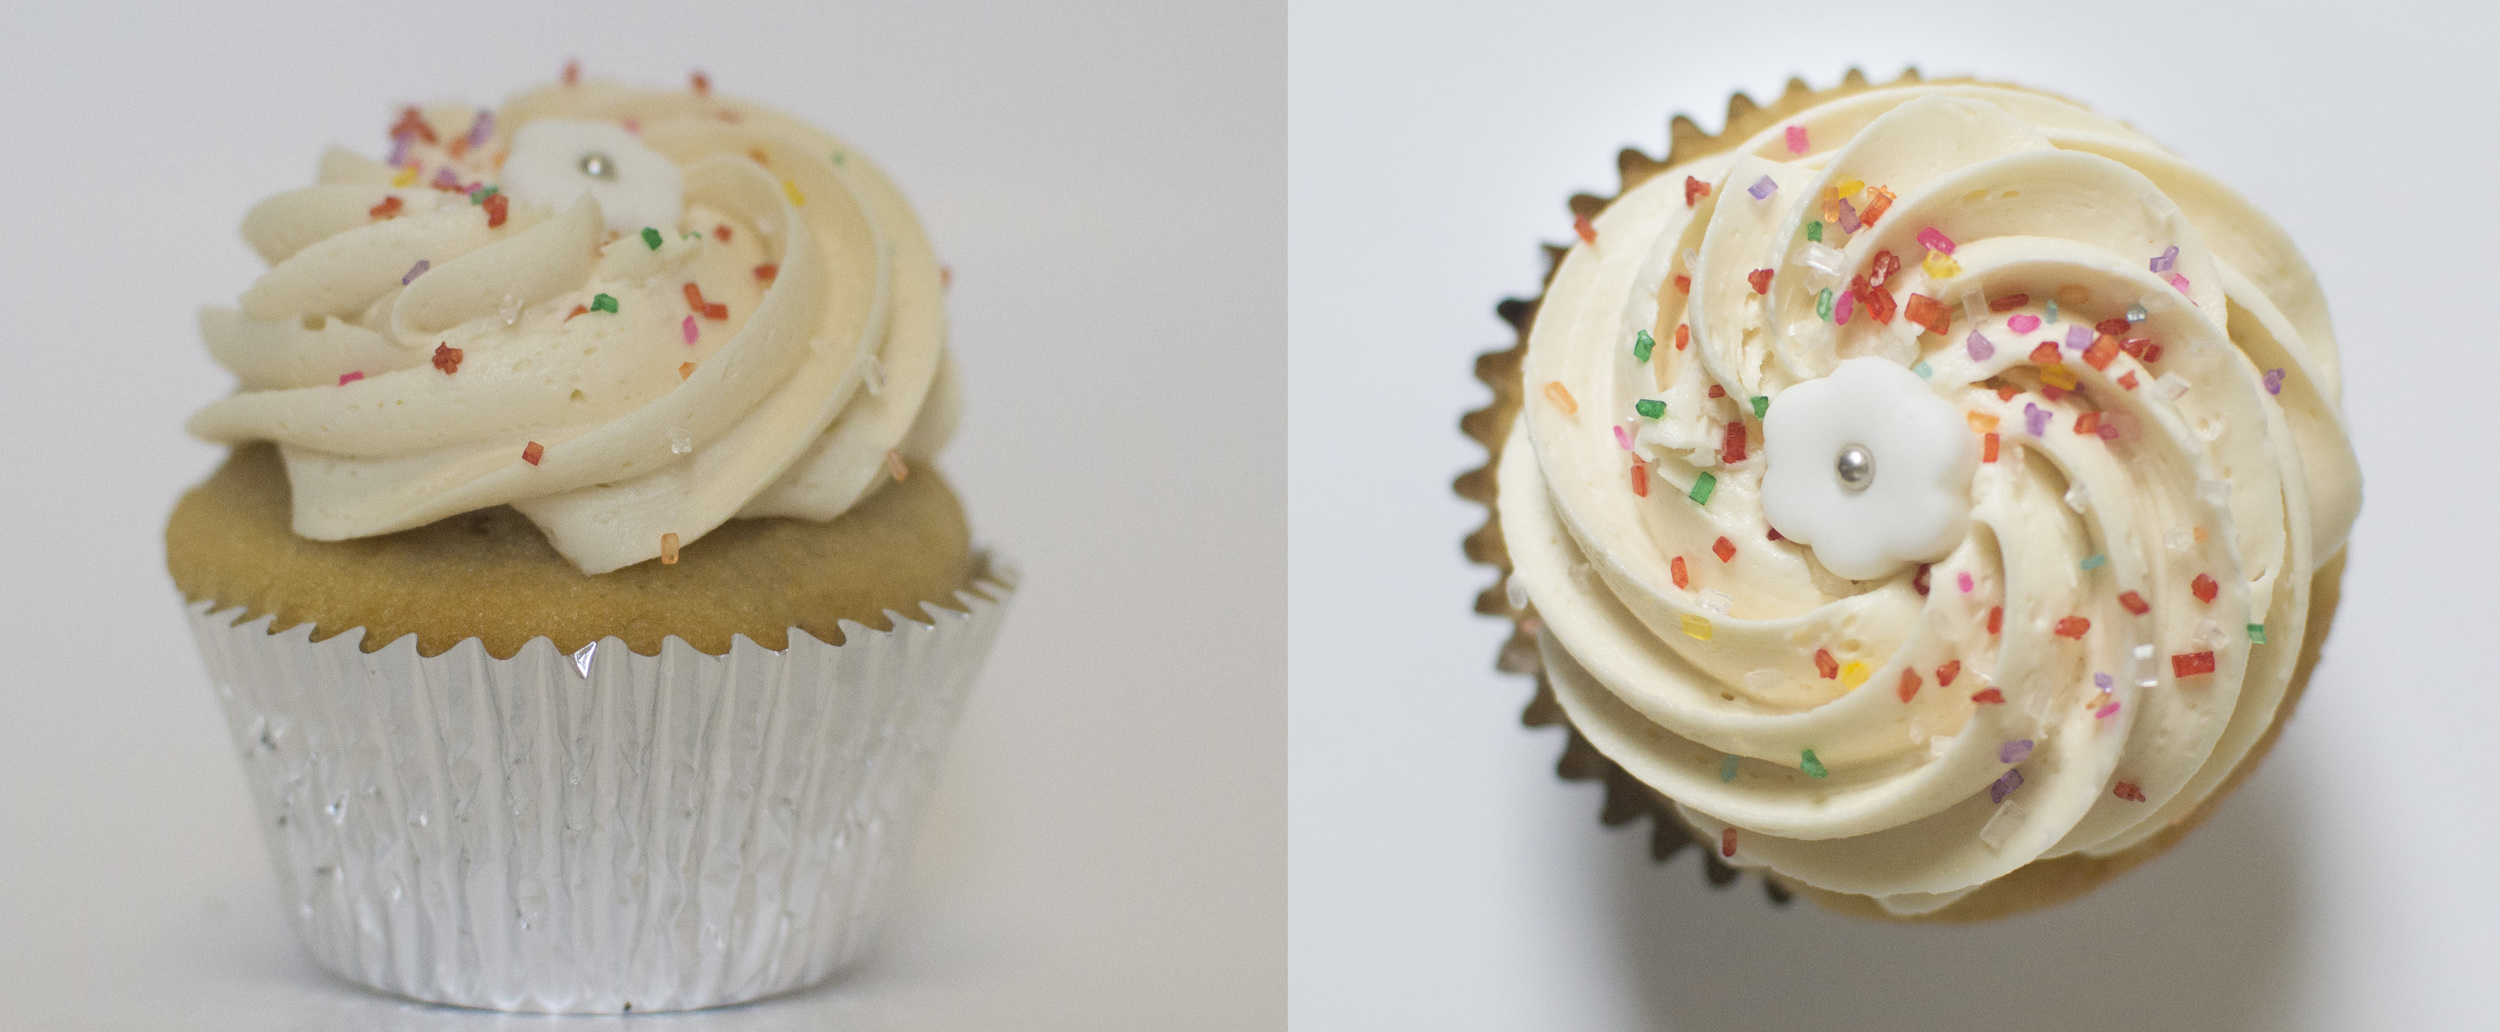 Vanilla  - Our moist vanilla cake topped with vanilla buttercream, sprinkles, and a white fondant flower topper.